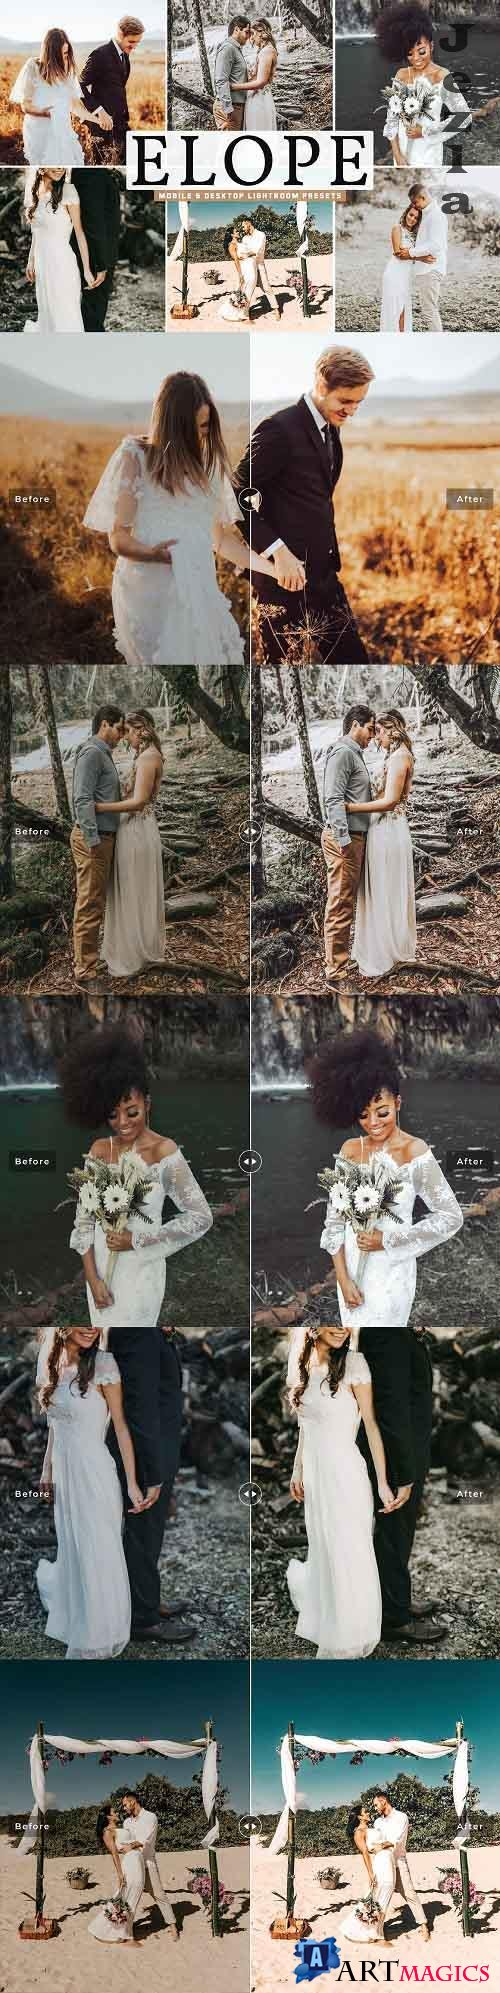 Elope Pro Lightroom Presets - 5297452 - Mobile & Desktop